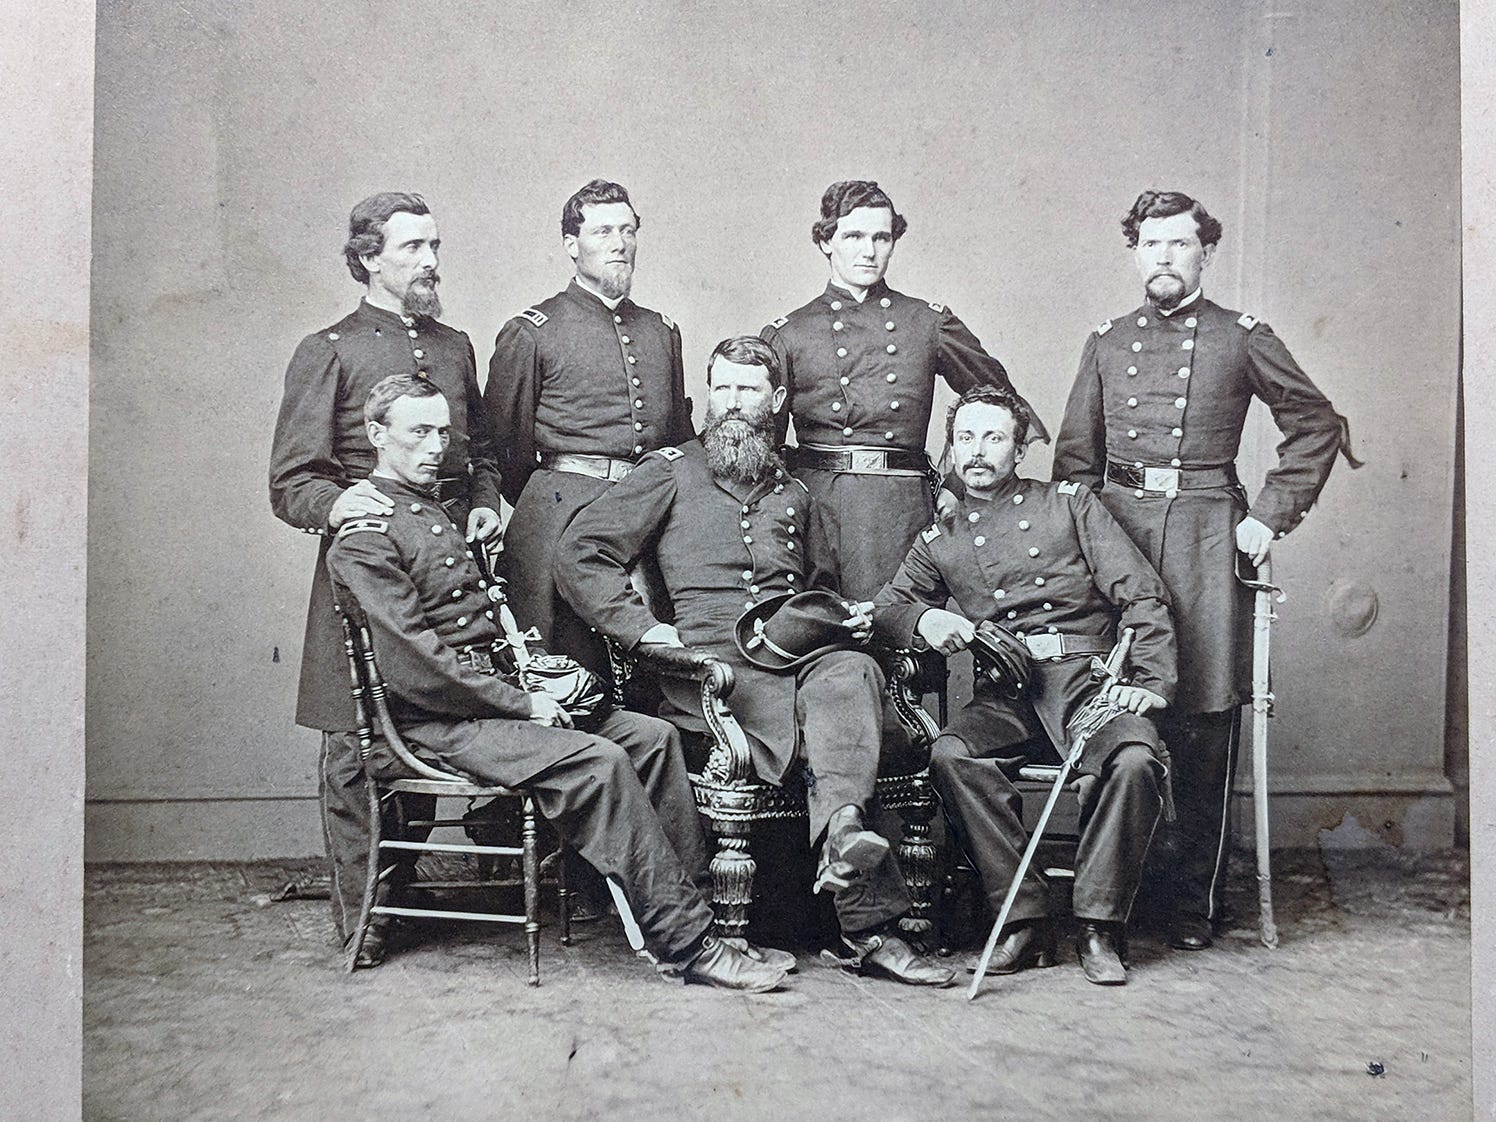 Gen. Francis P. Blair J., center, poses with officers of 17 Corp in 1864. The original photo is to be auctioned during the Blair Family, Fine Arts & Antiques Auction at Keystone Auctions LLC Saturday, October 27, 2018 at 9 a.m.